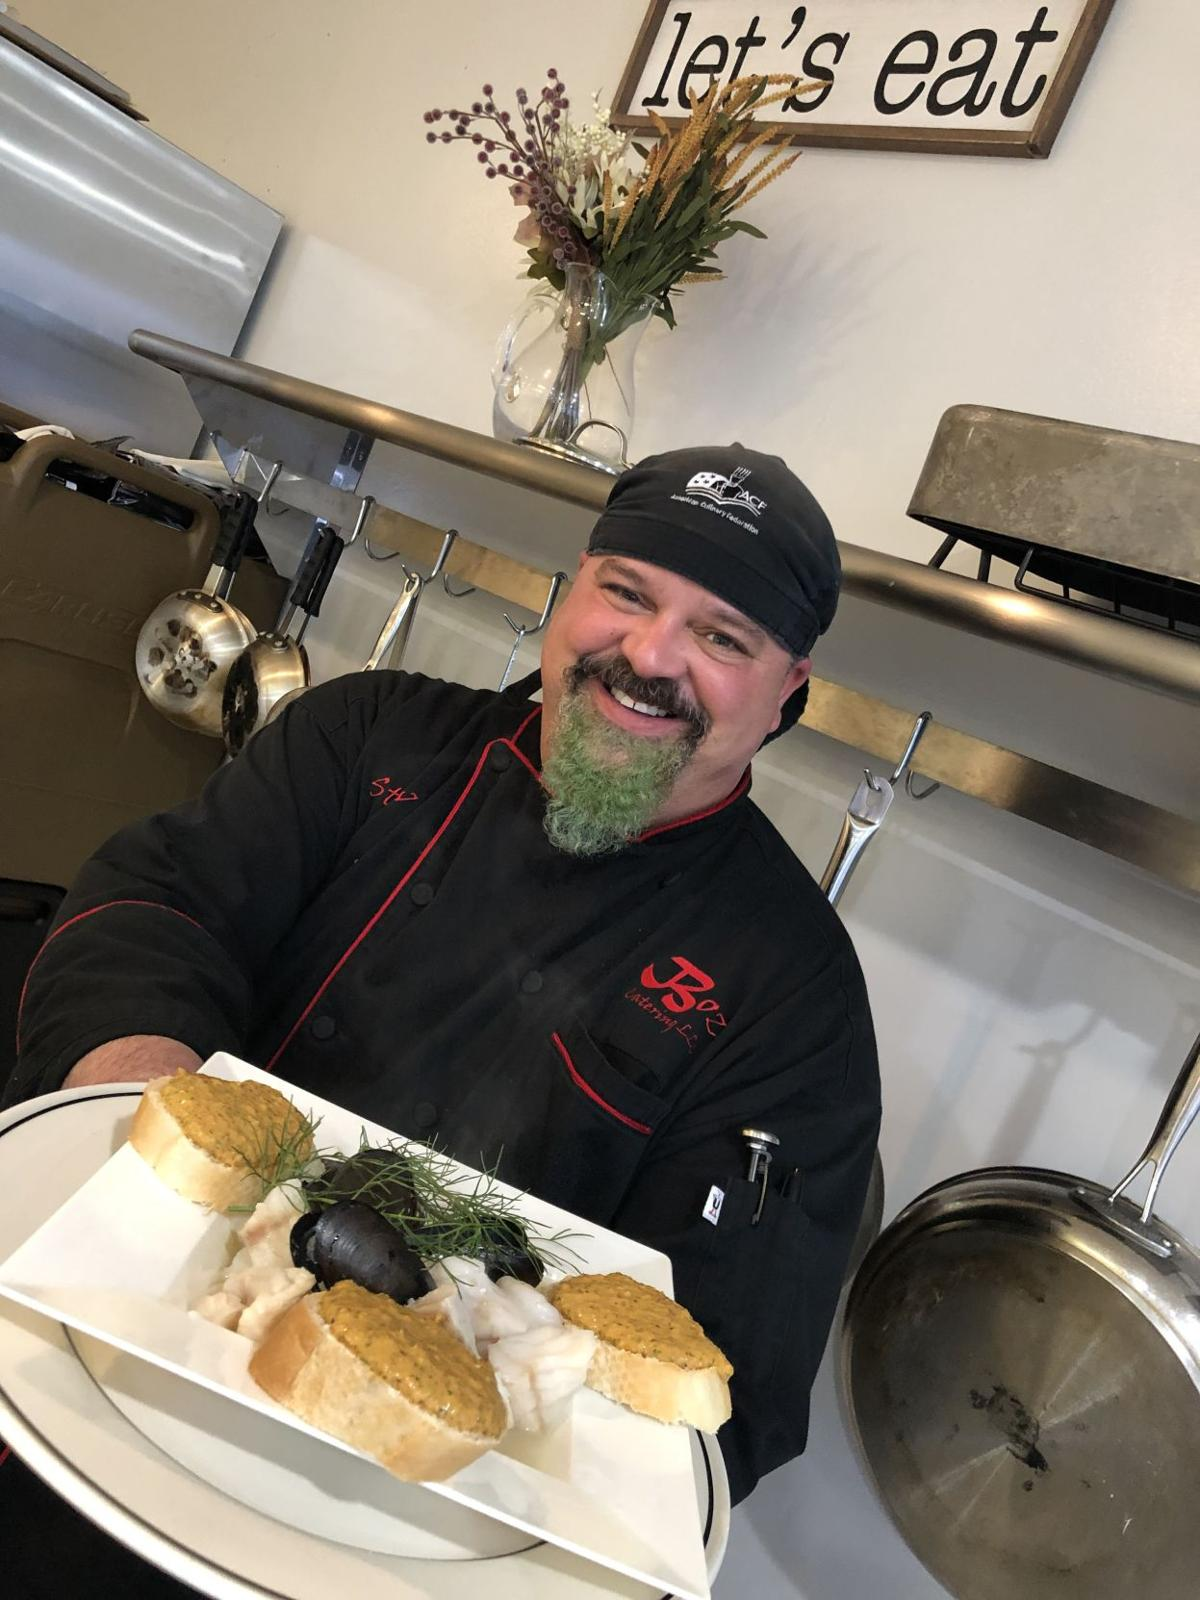 Colorado Springs Brother Luck opens dim sum eatery